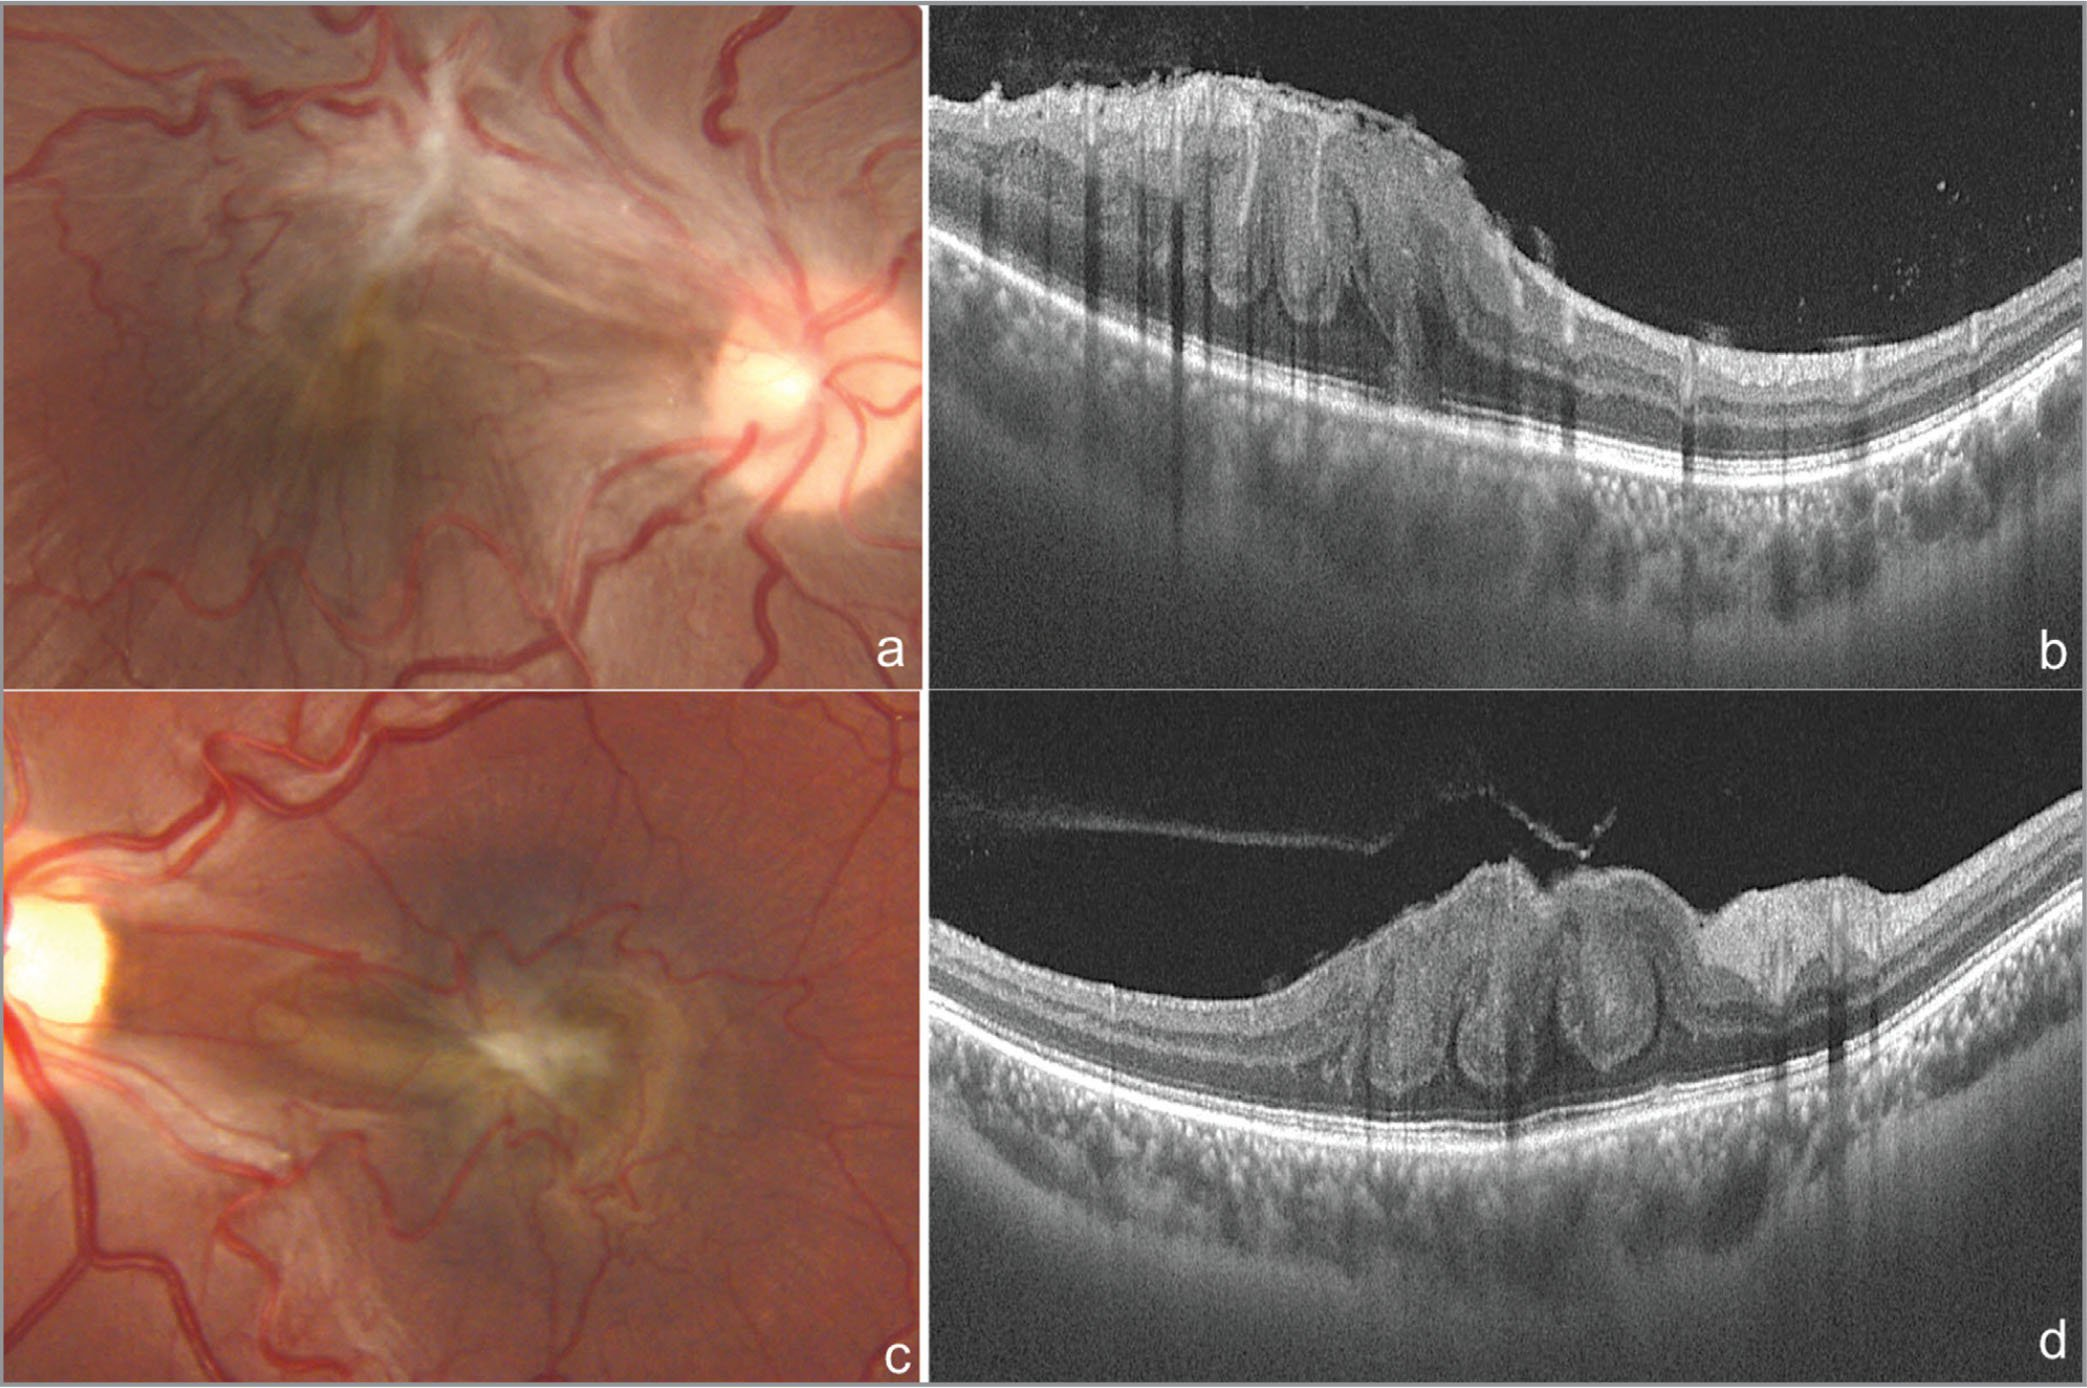 Color photographs of Patients 3 (A) and 4 (C) showing typical combined hamartoma of retina and retinal pigment epithelium lesion. Swept-source optical coherence tomography scans through the fovea of Patients 3 (B) and 4 (D) show Omega sign.